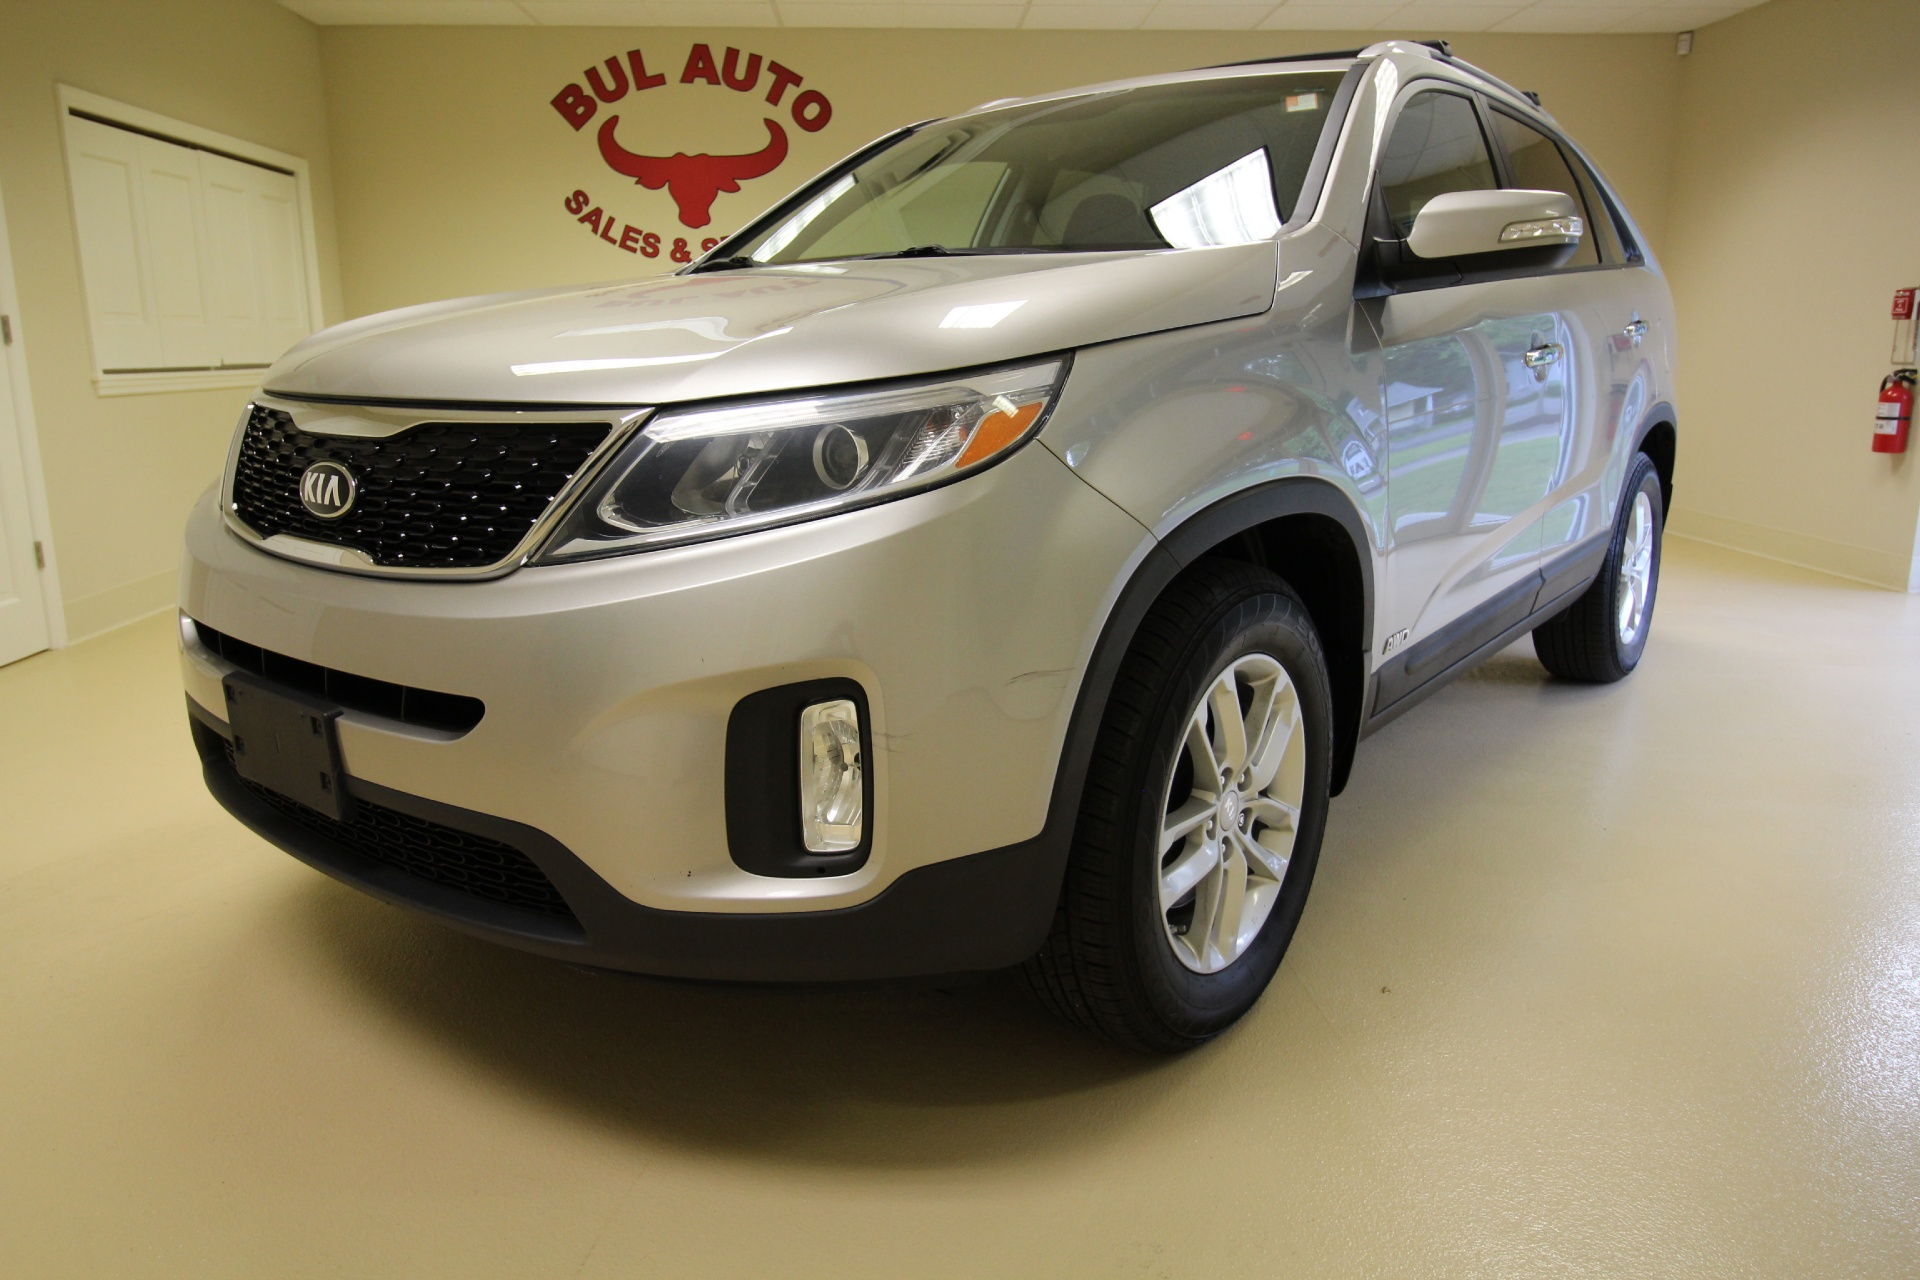 2014 kia sorento lx v6 awd stock 16132 for sale near albany ny ny kia dealer for sale in. Black Bedroom Furniture Sets. Home Design Ideas